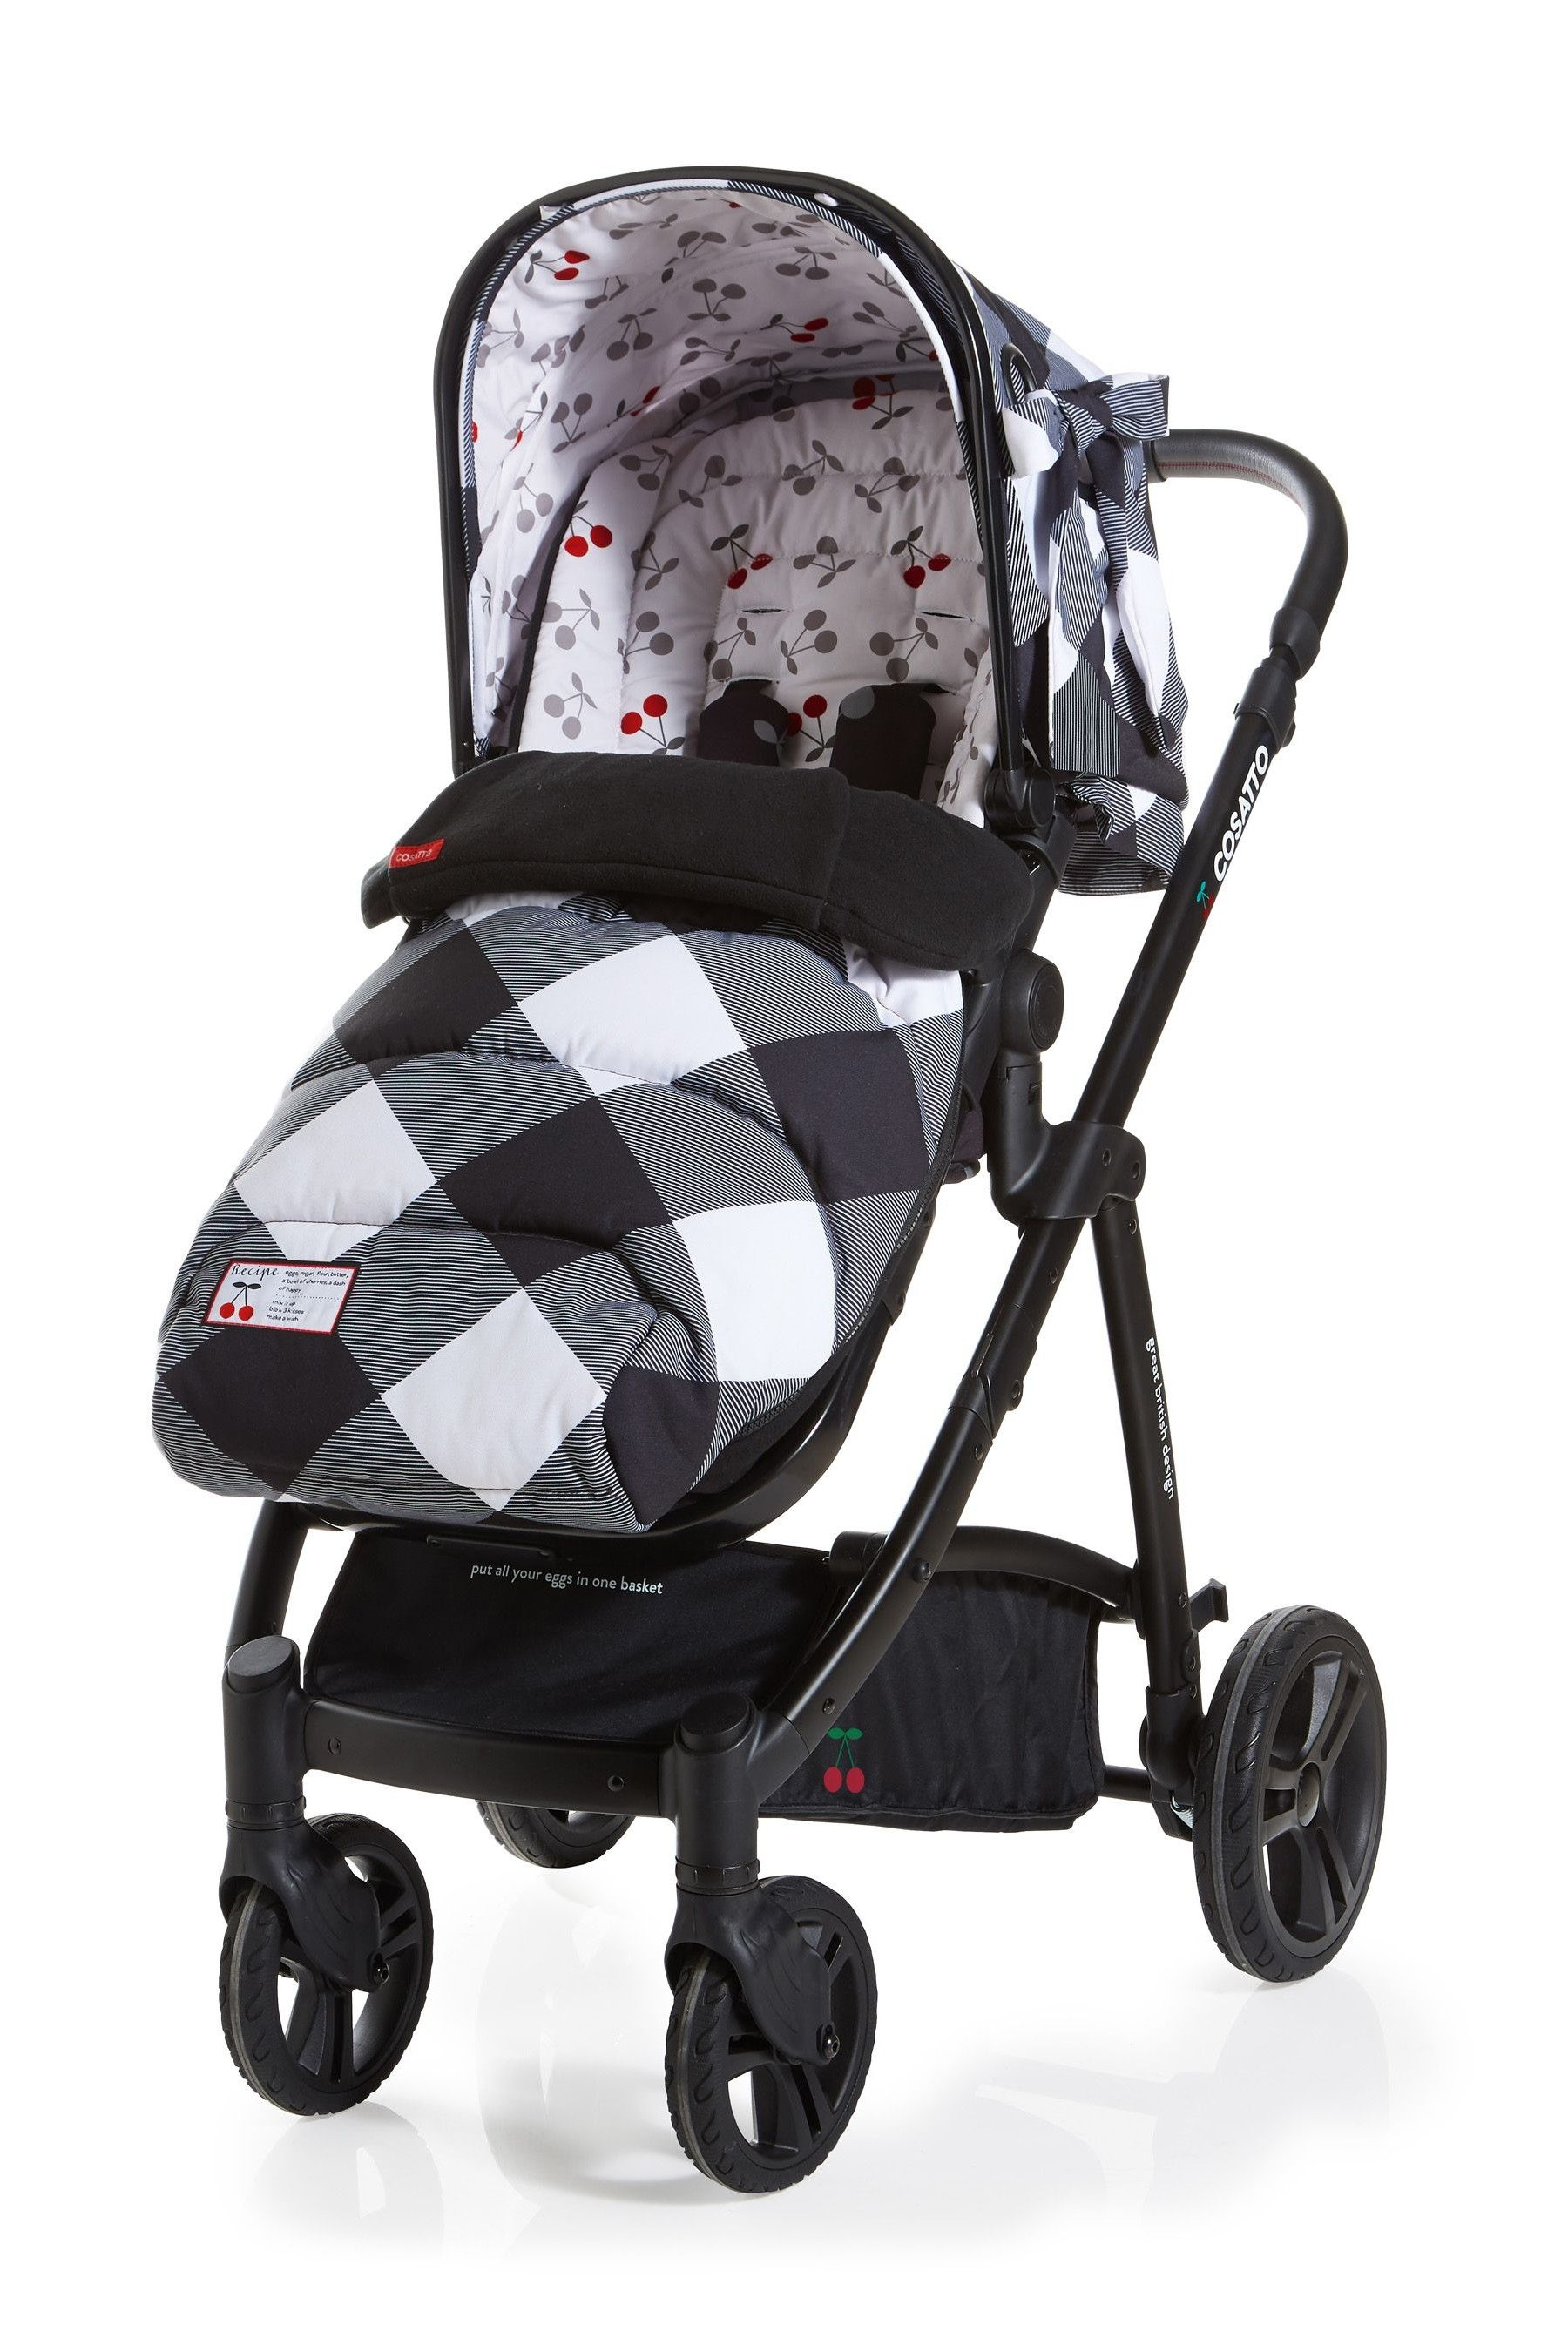 Wow Pram And Pushchair by Cosatto Black in 2020 Prams